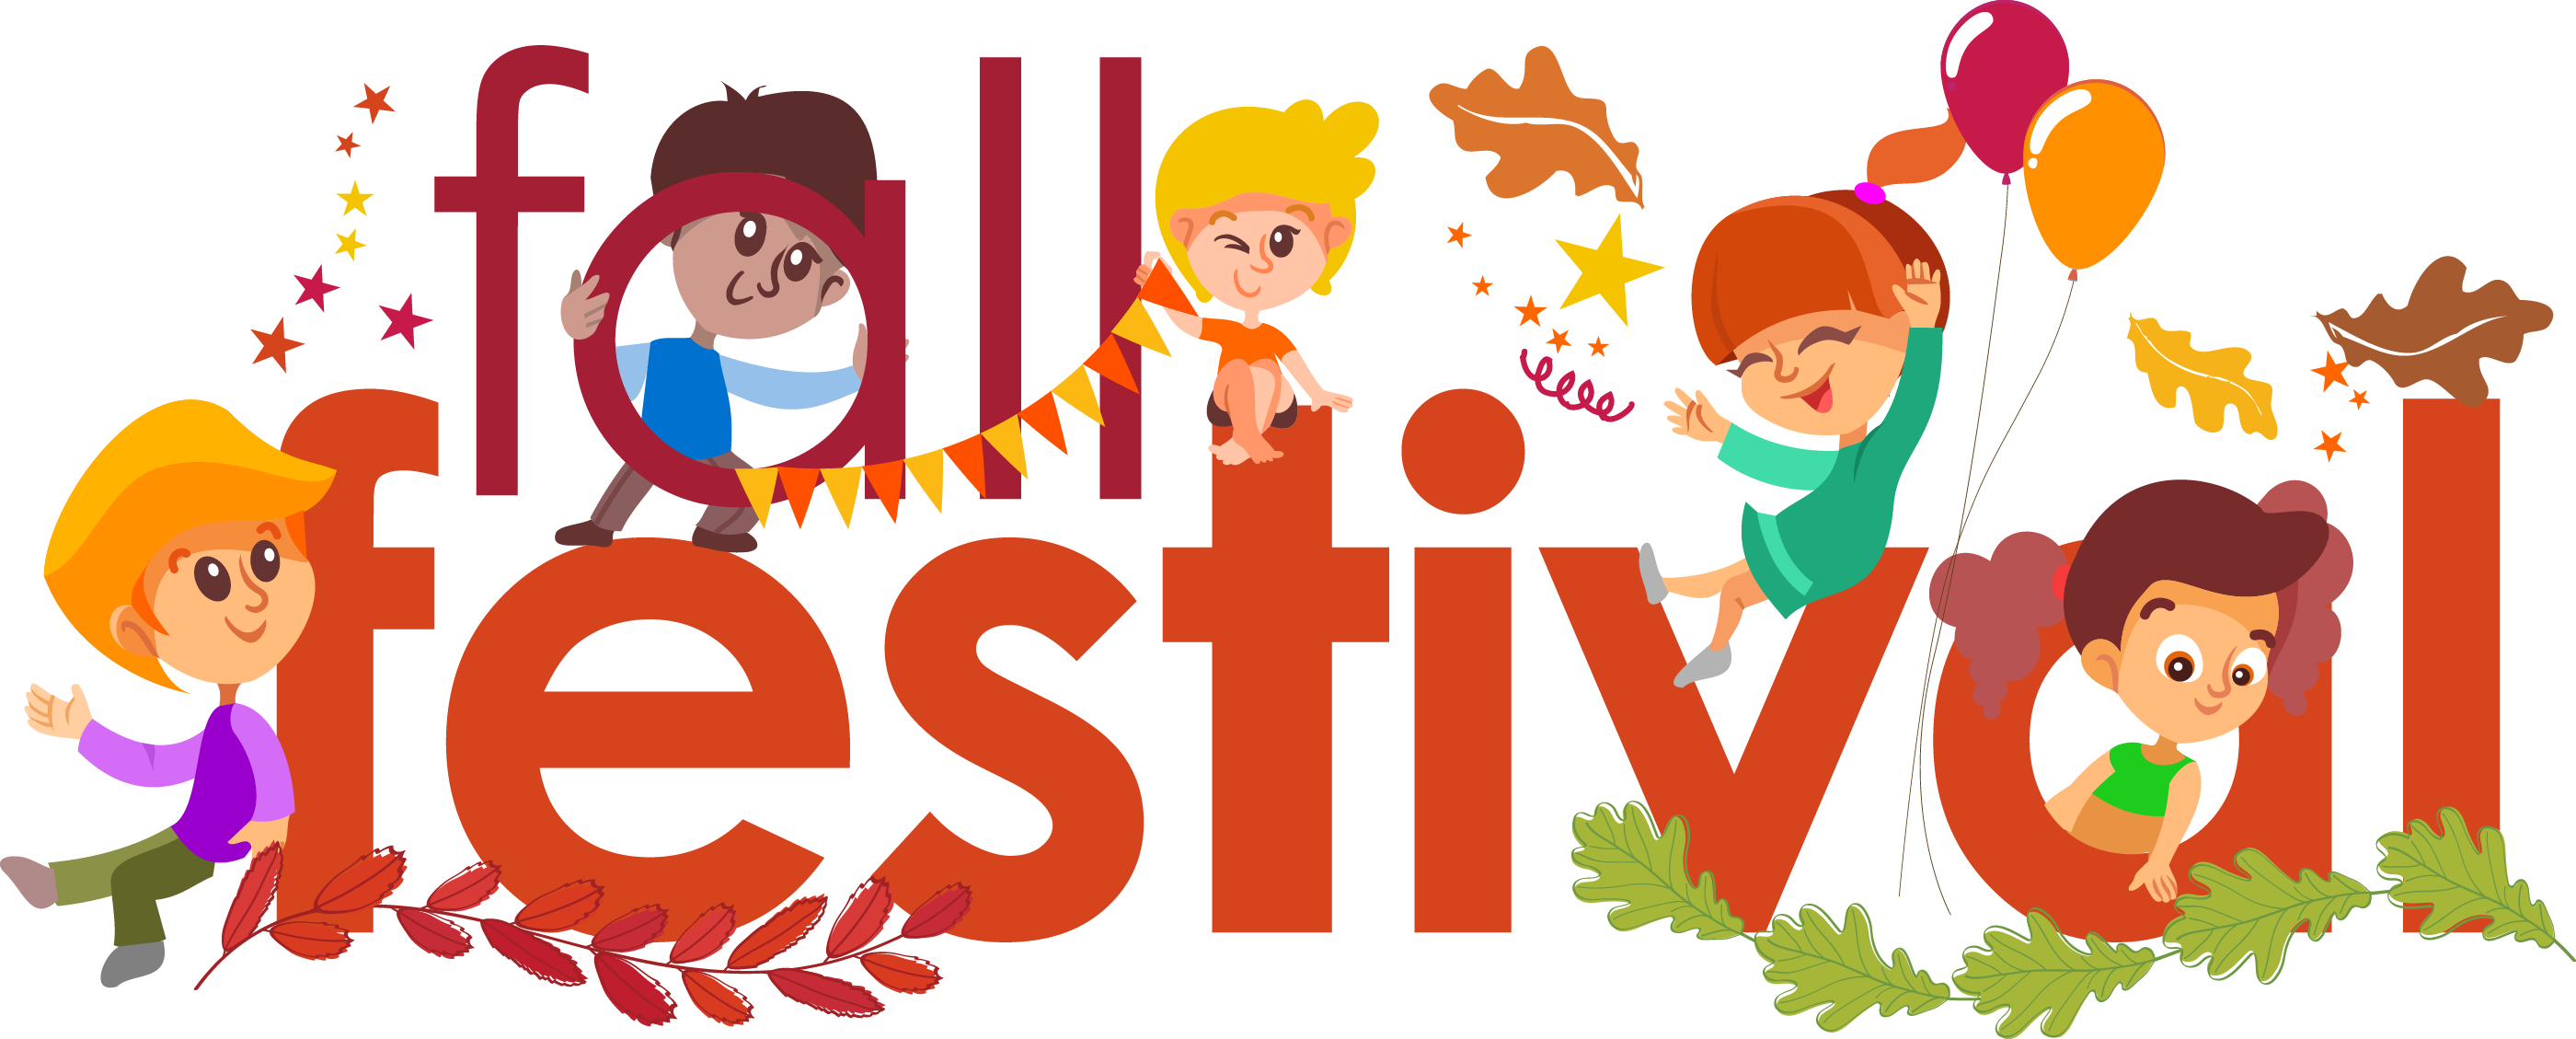 Sun coast clipart logo jpg royalty free download Roda @ Hidden Oaks Elementary – Multicultural Fall Festival ... jpg royalty free download